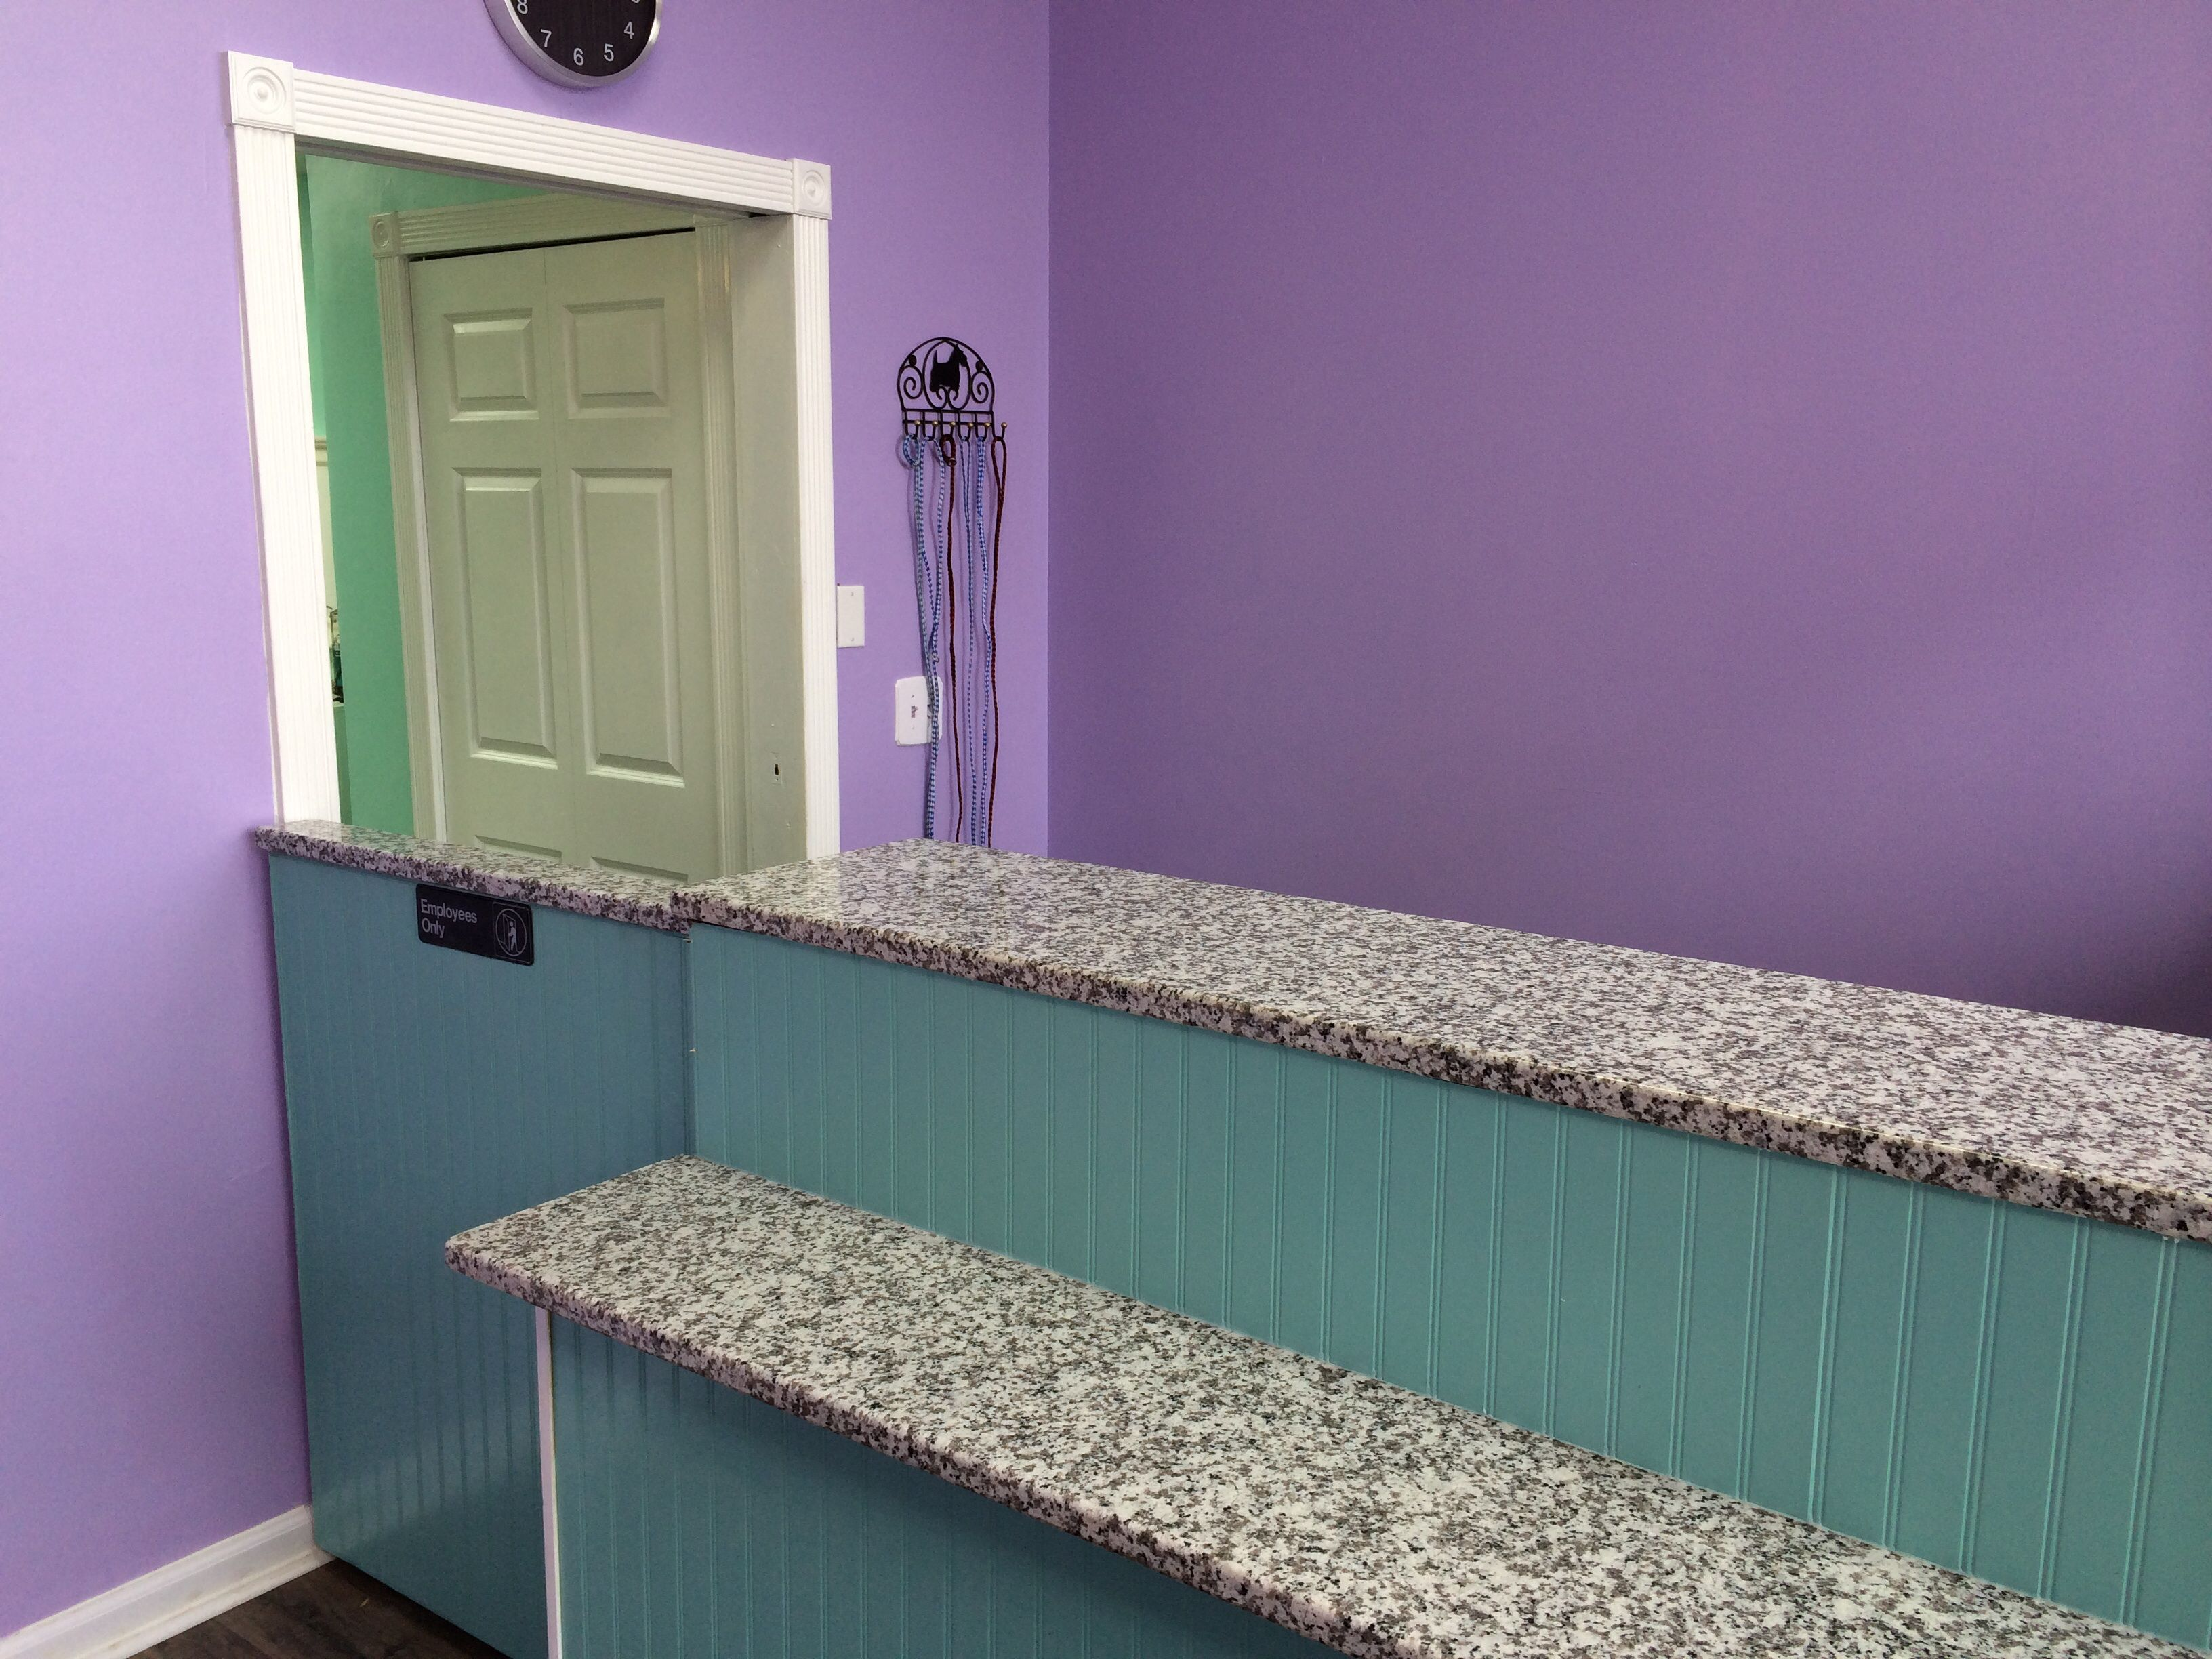 Our new granite counter the upscale tail pet grooming salon our new granite counter the upscale tail pet grooming salon naperville 630 632 tail theupscaletail solutioingenieria Image collections